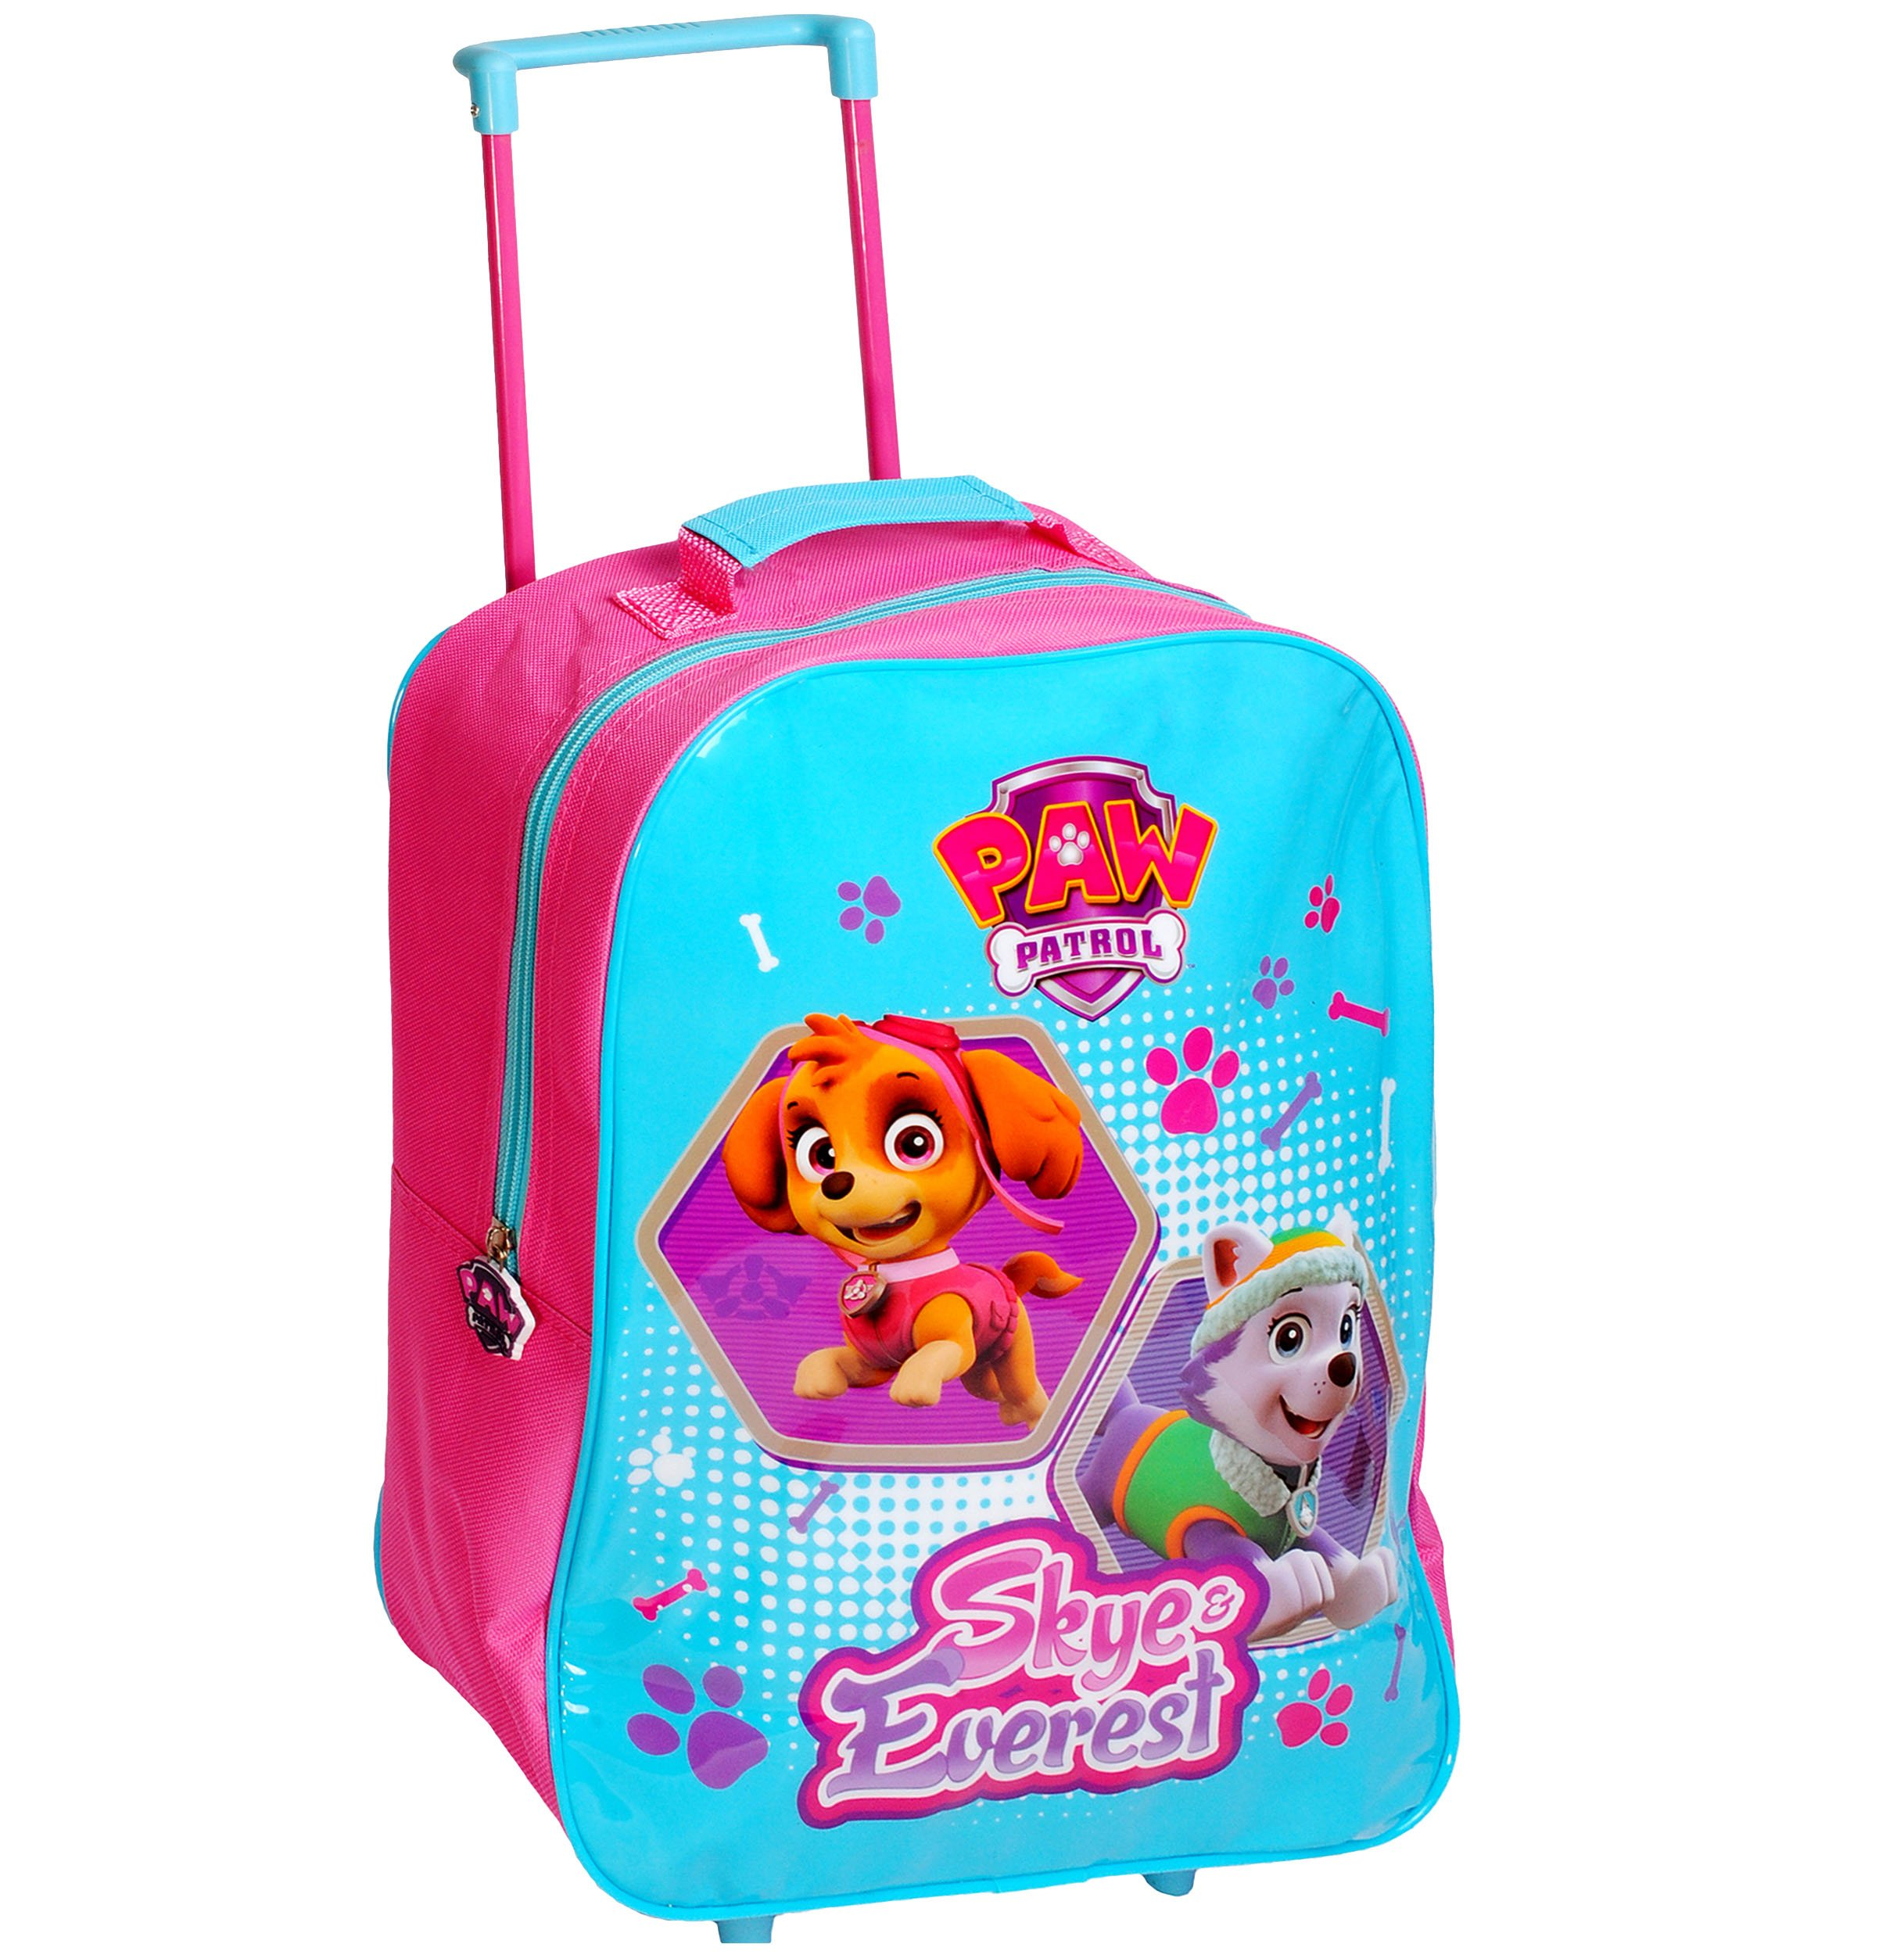 alles-meinede-GmbH-Kinder-Trolley-Paw-Patrol-Hunde-wasserabweisend-beschichtet-fr-Mdchen-Trolly-mit-Rollen-Koffertrolley-Kindertrolley-Kindertrolly-Case